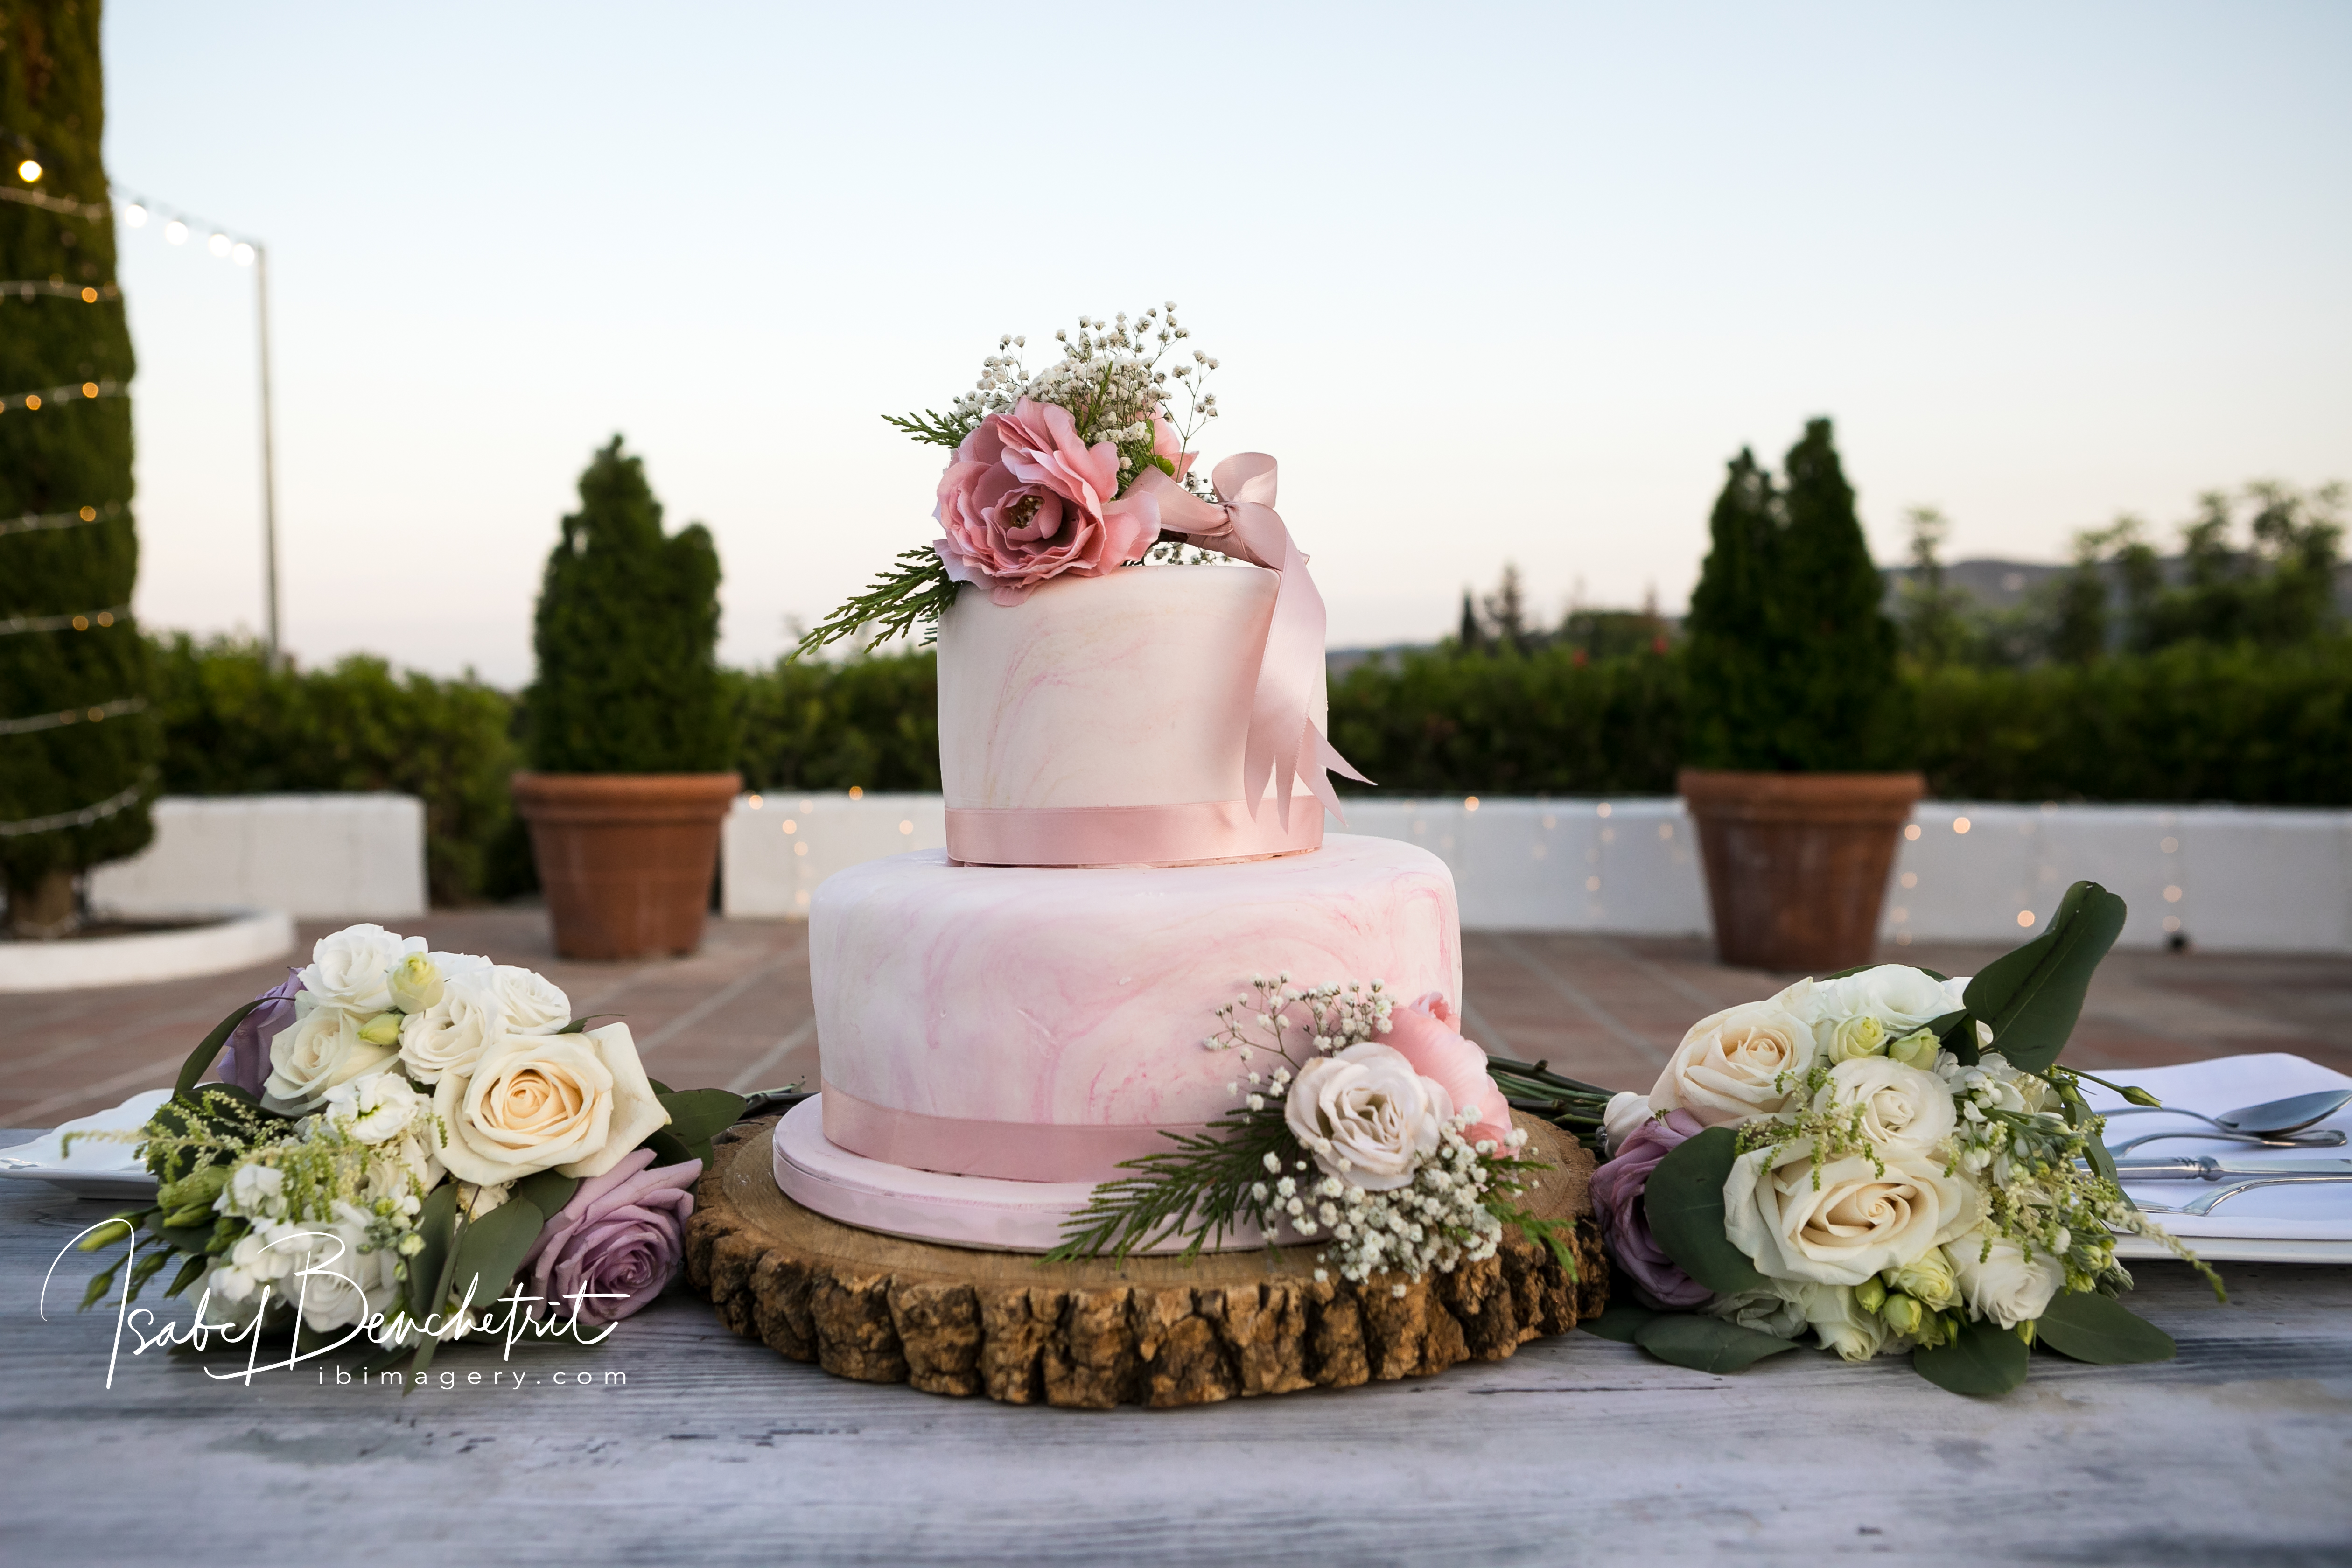 The beautiful two-tier wedding cake